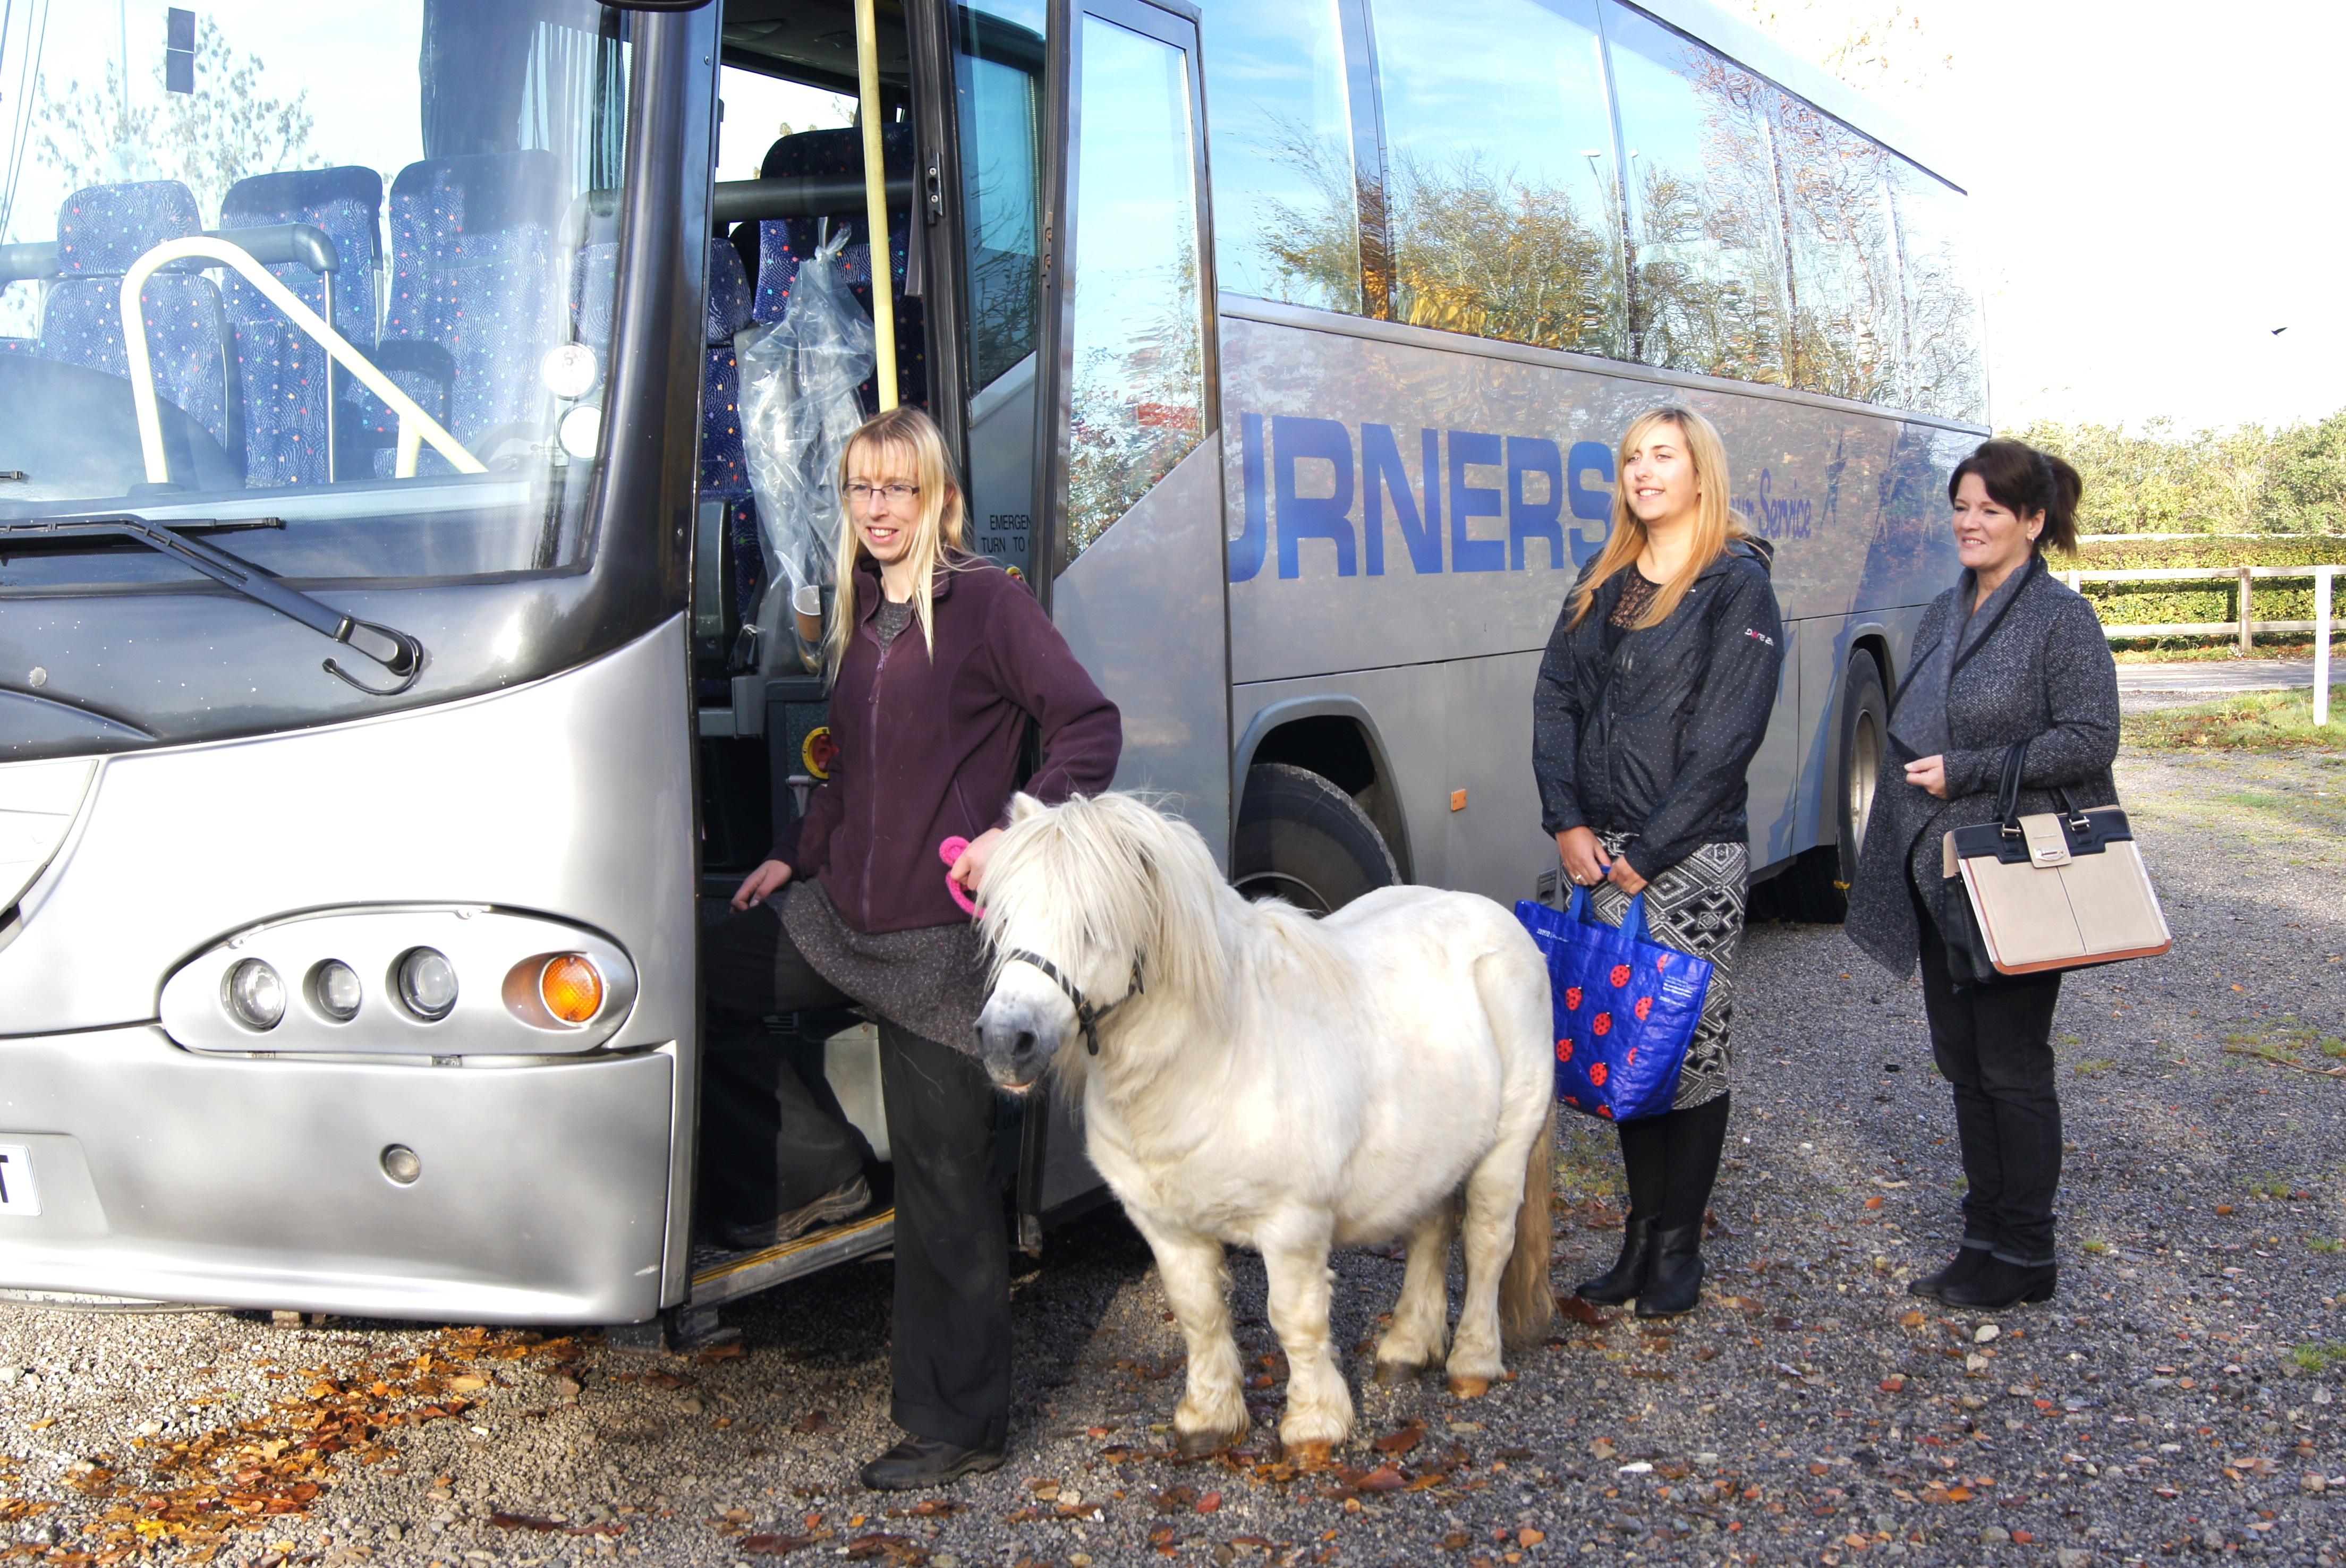 Buster found at a bus stop - HorseWorld News – Pony found abandoned at a bus stop is on a journey to recovery